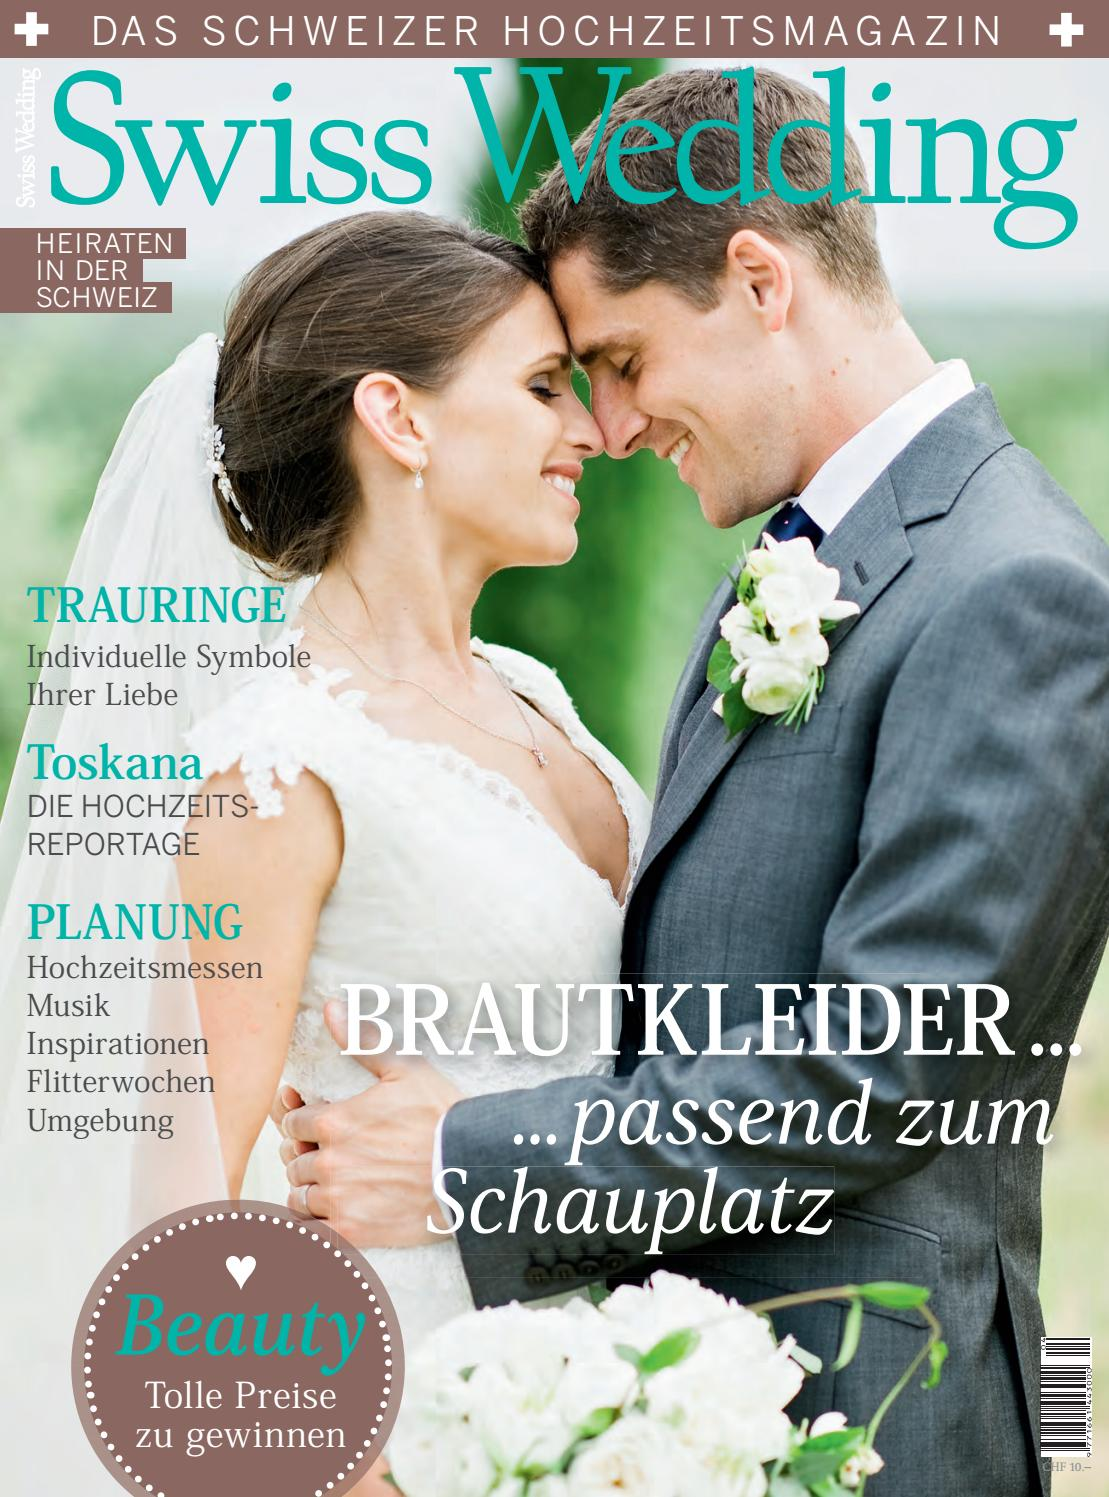 Swiss Wedding 04 2016 by BL Verlag AG - issuu